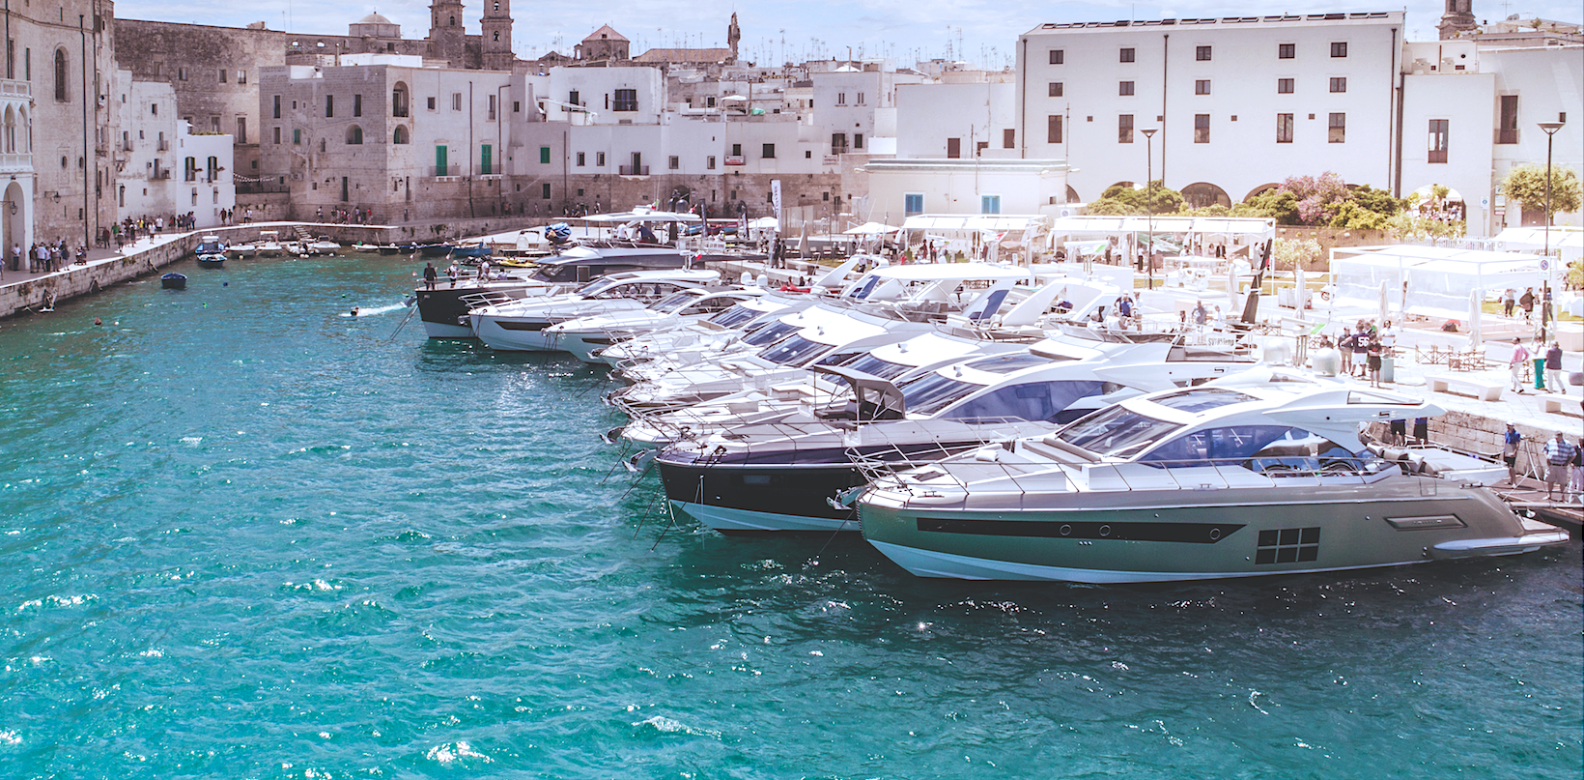 For its 11th Azimut Benetti Yachting Gala, the Azimut Benetti Group welcomed guests to a three-day rendezvous in the picturesque town of Puglia in Italy